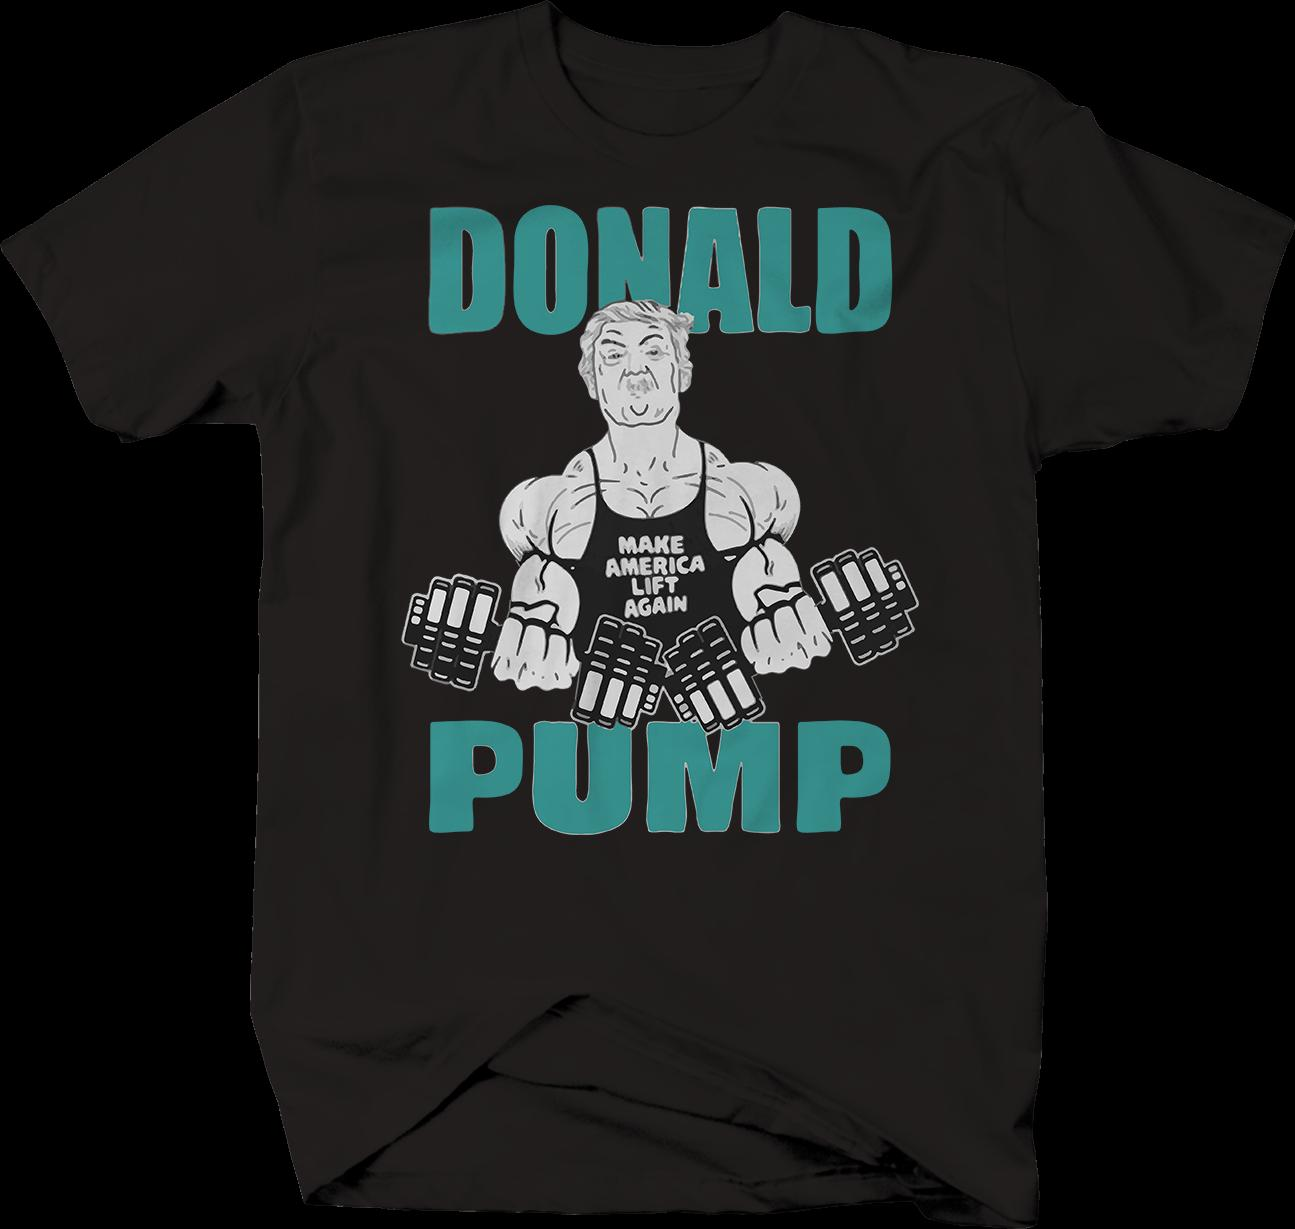 83b8a229 Donald Pump Trump Workout President Bodybuilding Gym Funny T Shirt Funny  Unisex Tee Collared T Shirts Funky Tshirts From Stshirt, $12.96| DHgate.Com